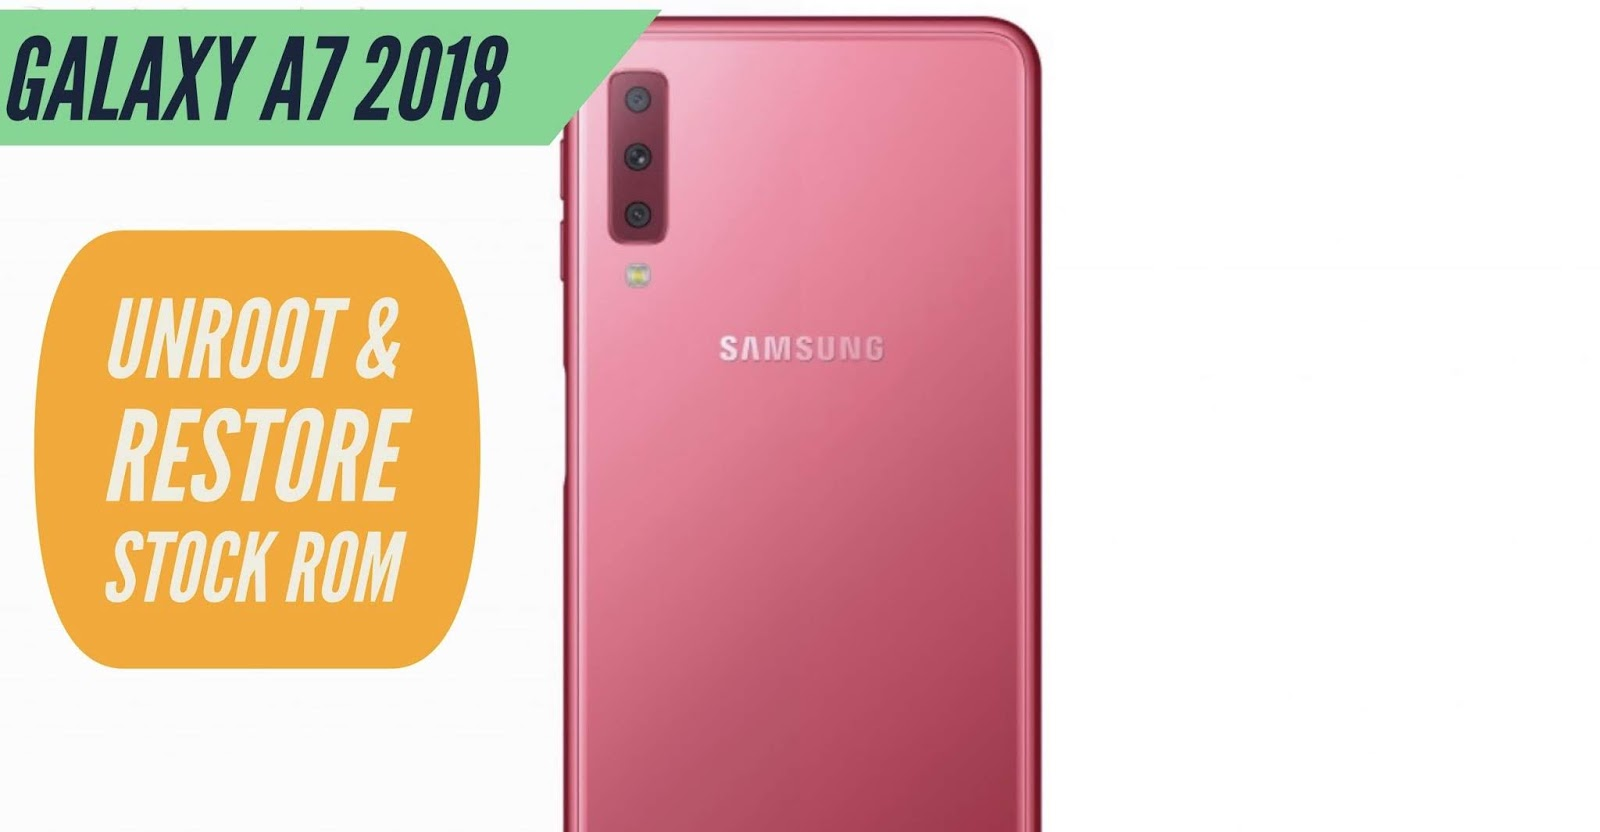 Samsung Galaxy A7 (2018) STOCK ROM Free Download - DL Directories